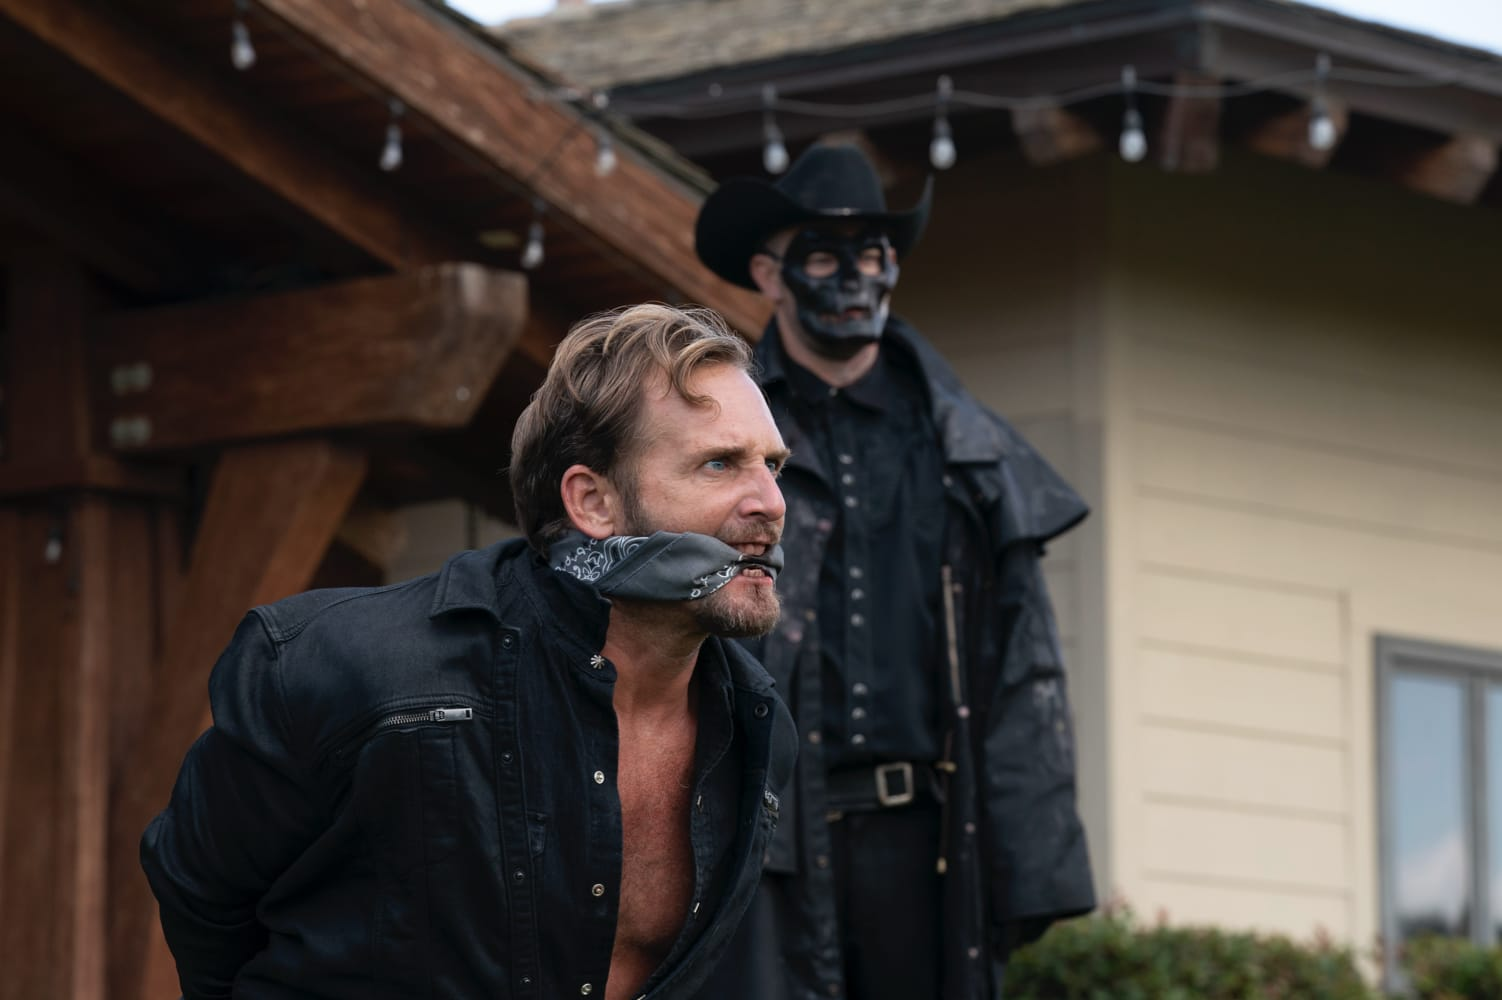 (from left) Dylan Tucker (Josh Lucas) and a Purger in *The Forever Purge*, directed by Everardo Gout. Photo Credit: Jake Giles Netter/Universal Pictures